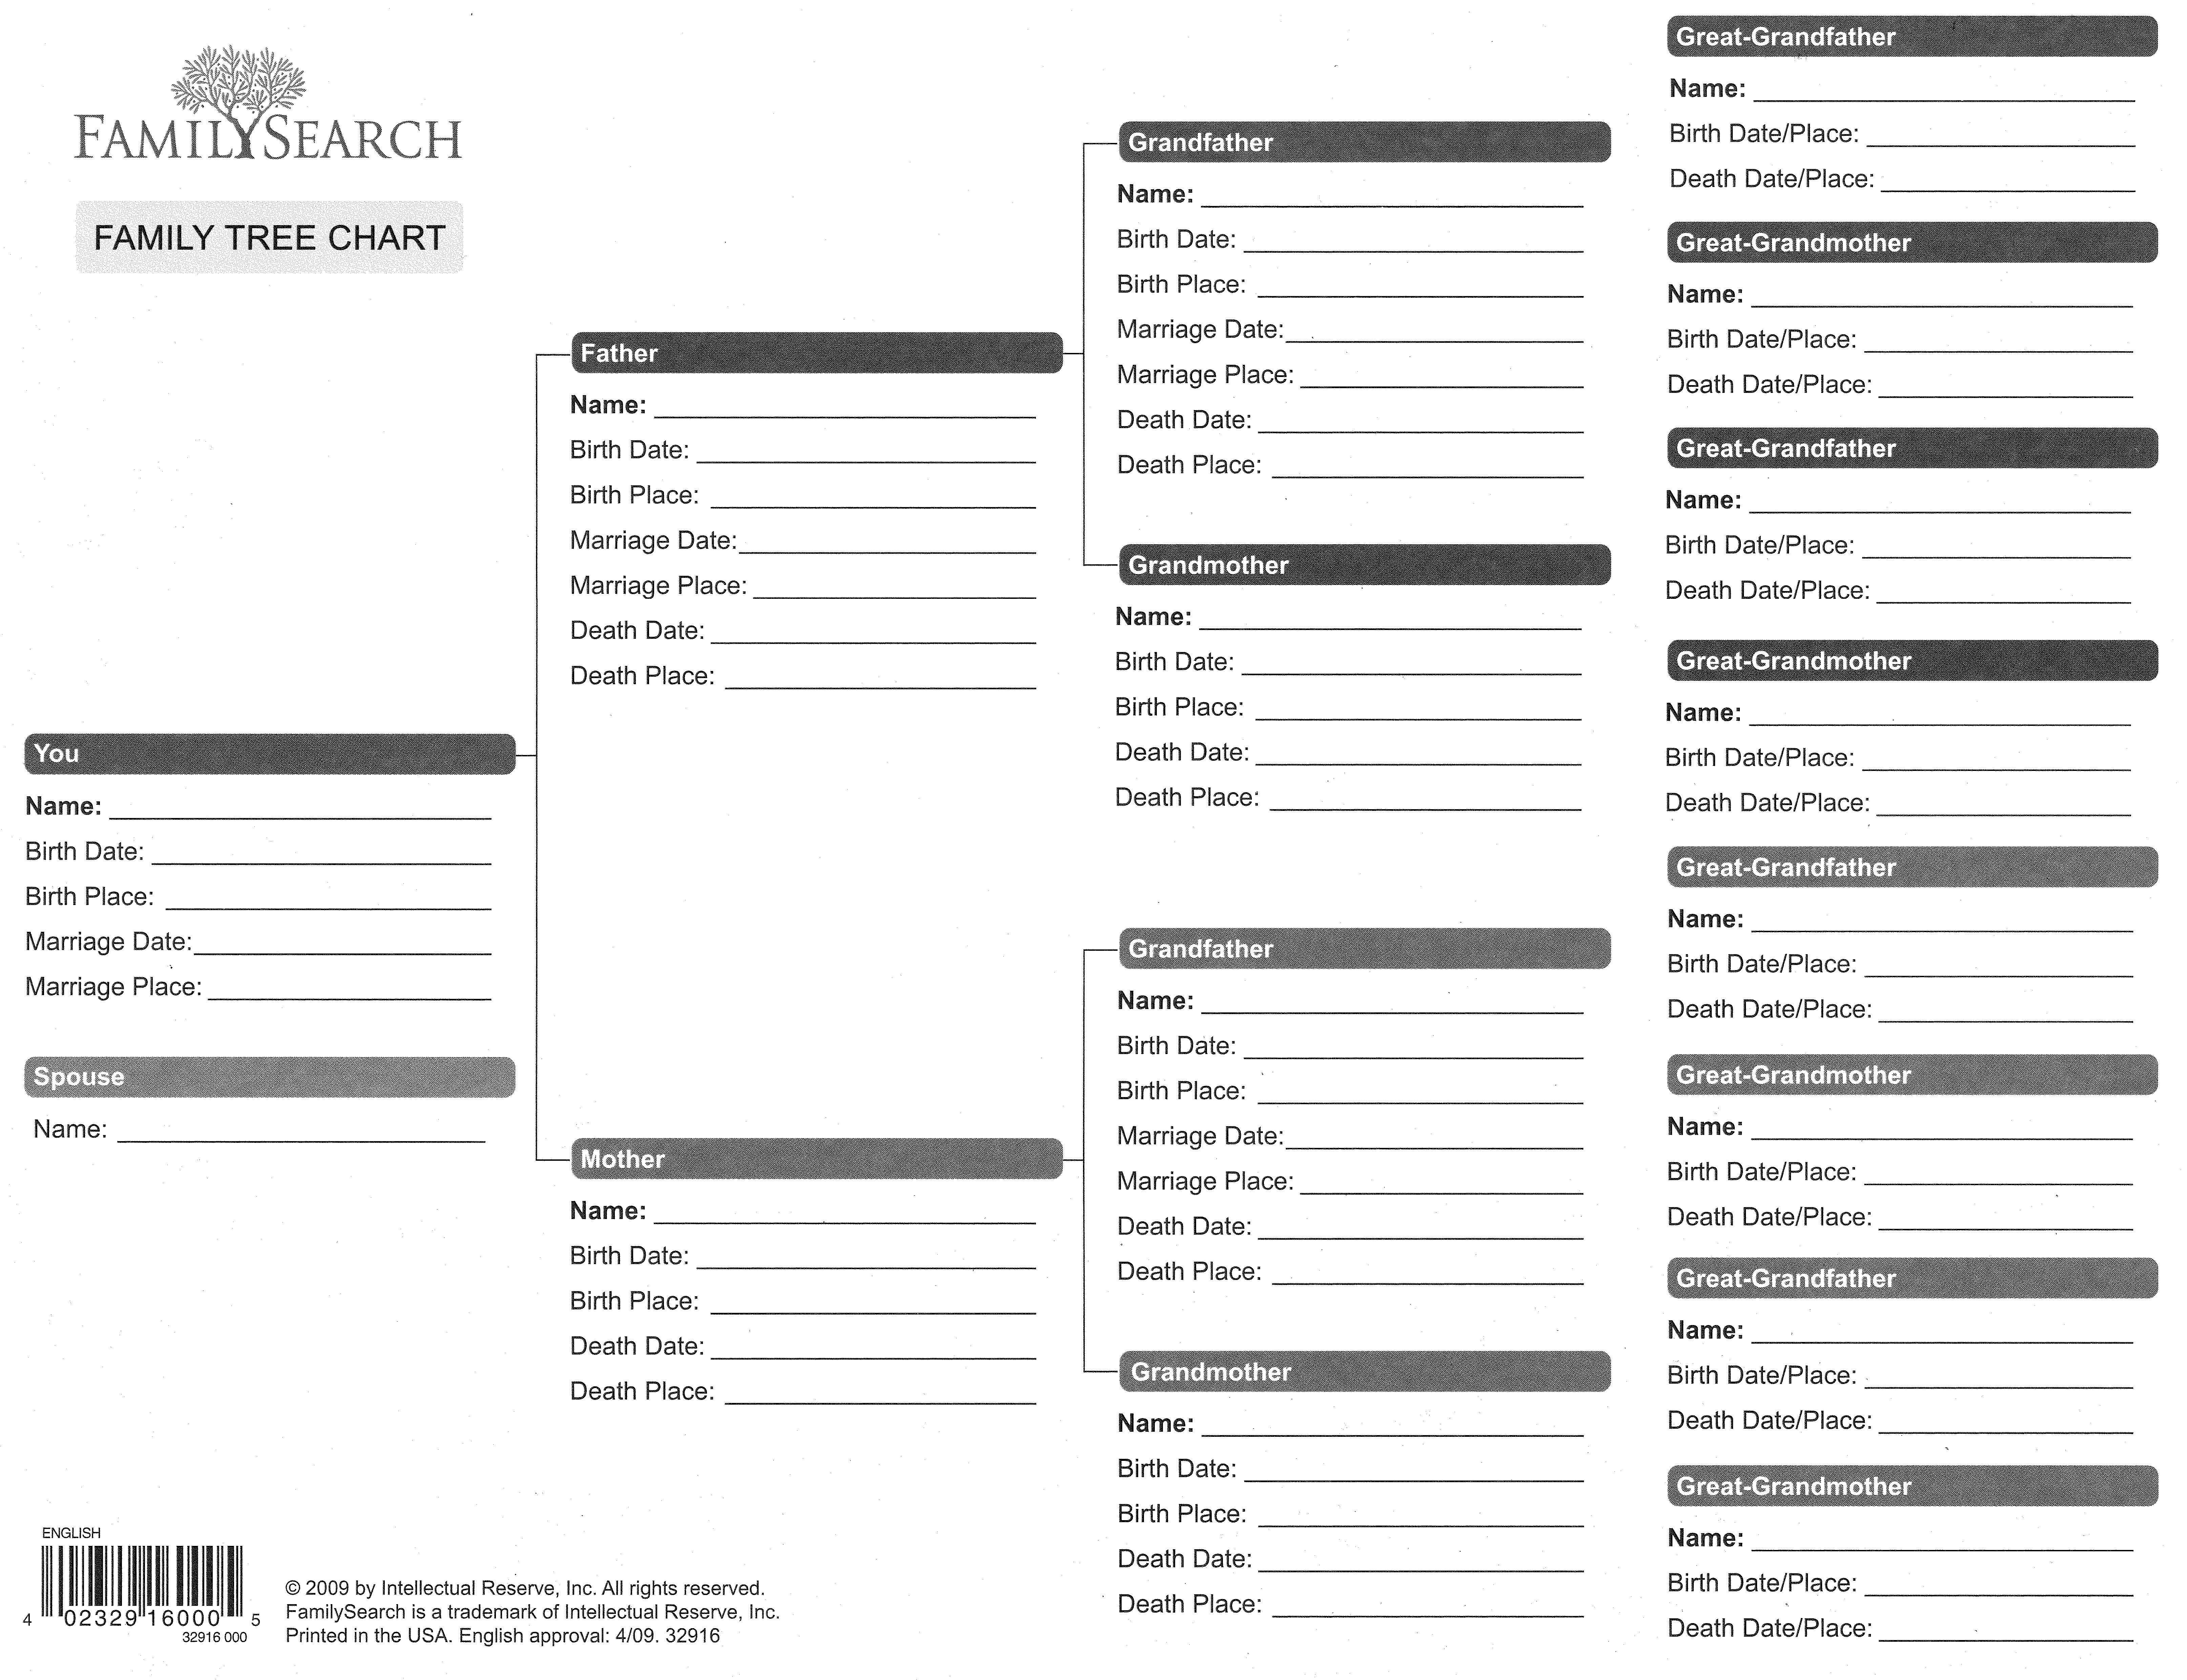 Free Printable Genealogy Forms Client Family Tree Blank - Uma - Free Printable Family History Forms